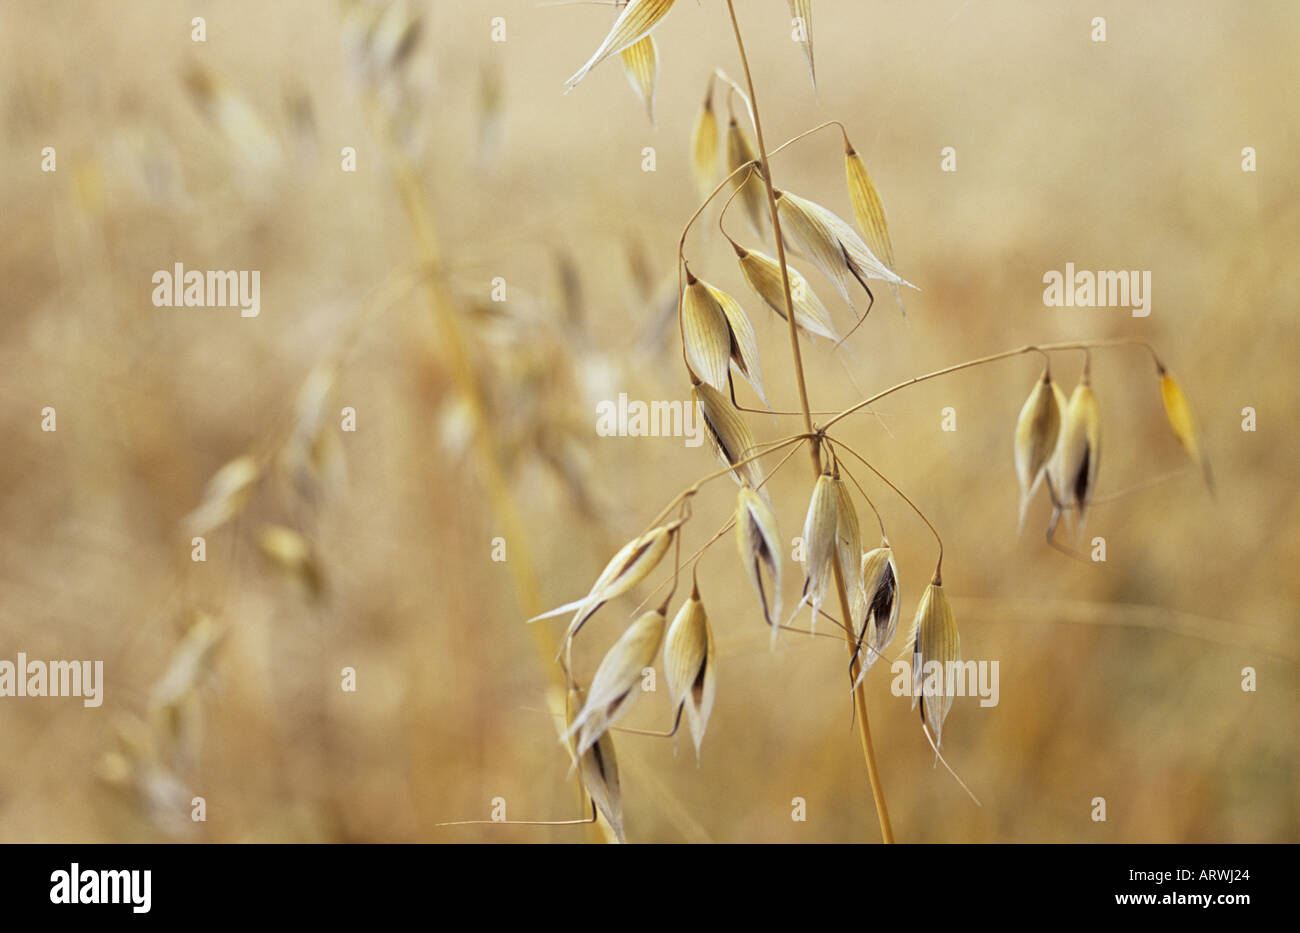 Close up of a ripe stem of Wild oat or Avena fatua against a defocussed background of other ripe stems Stock Photo